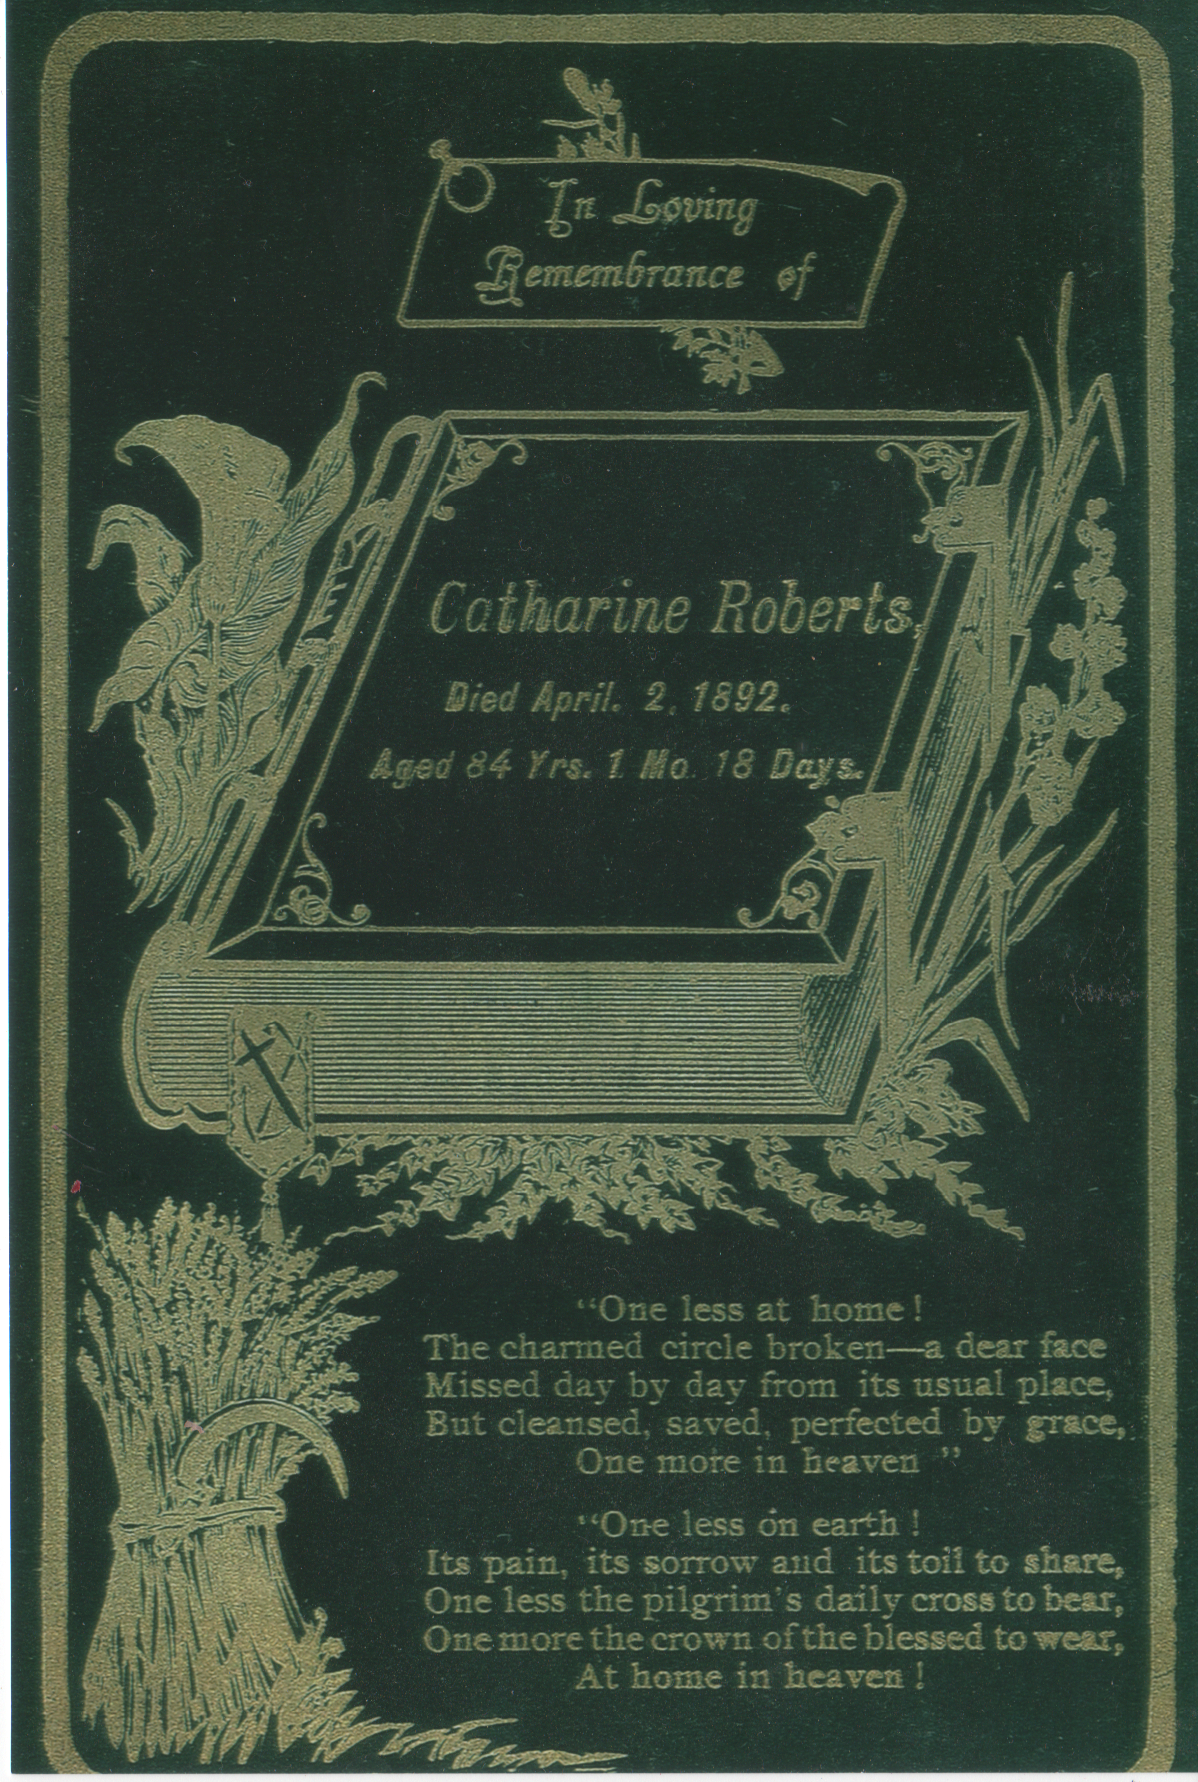 death-card-for-catherine-schulmerich-roberts-001